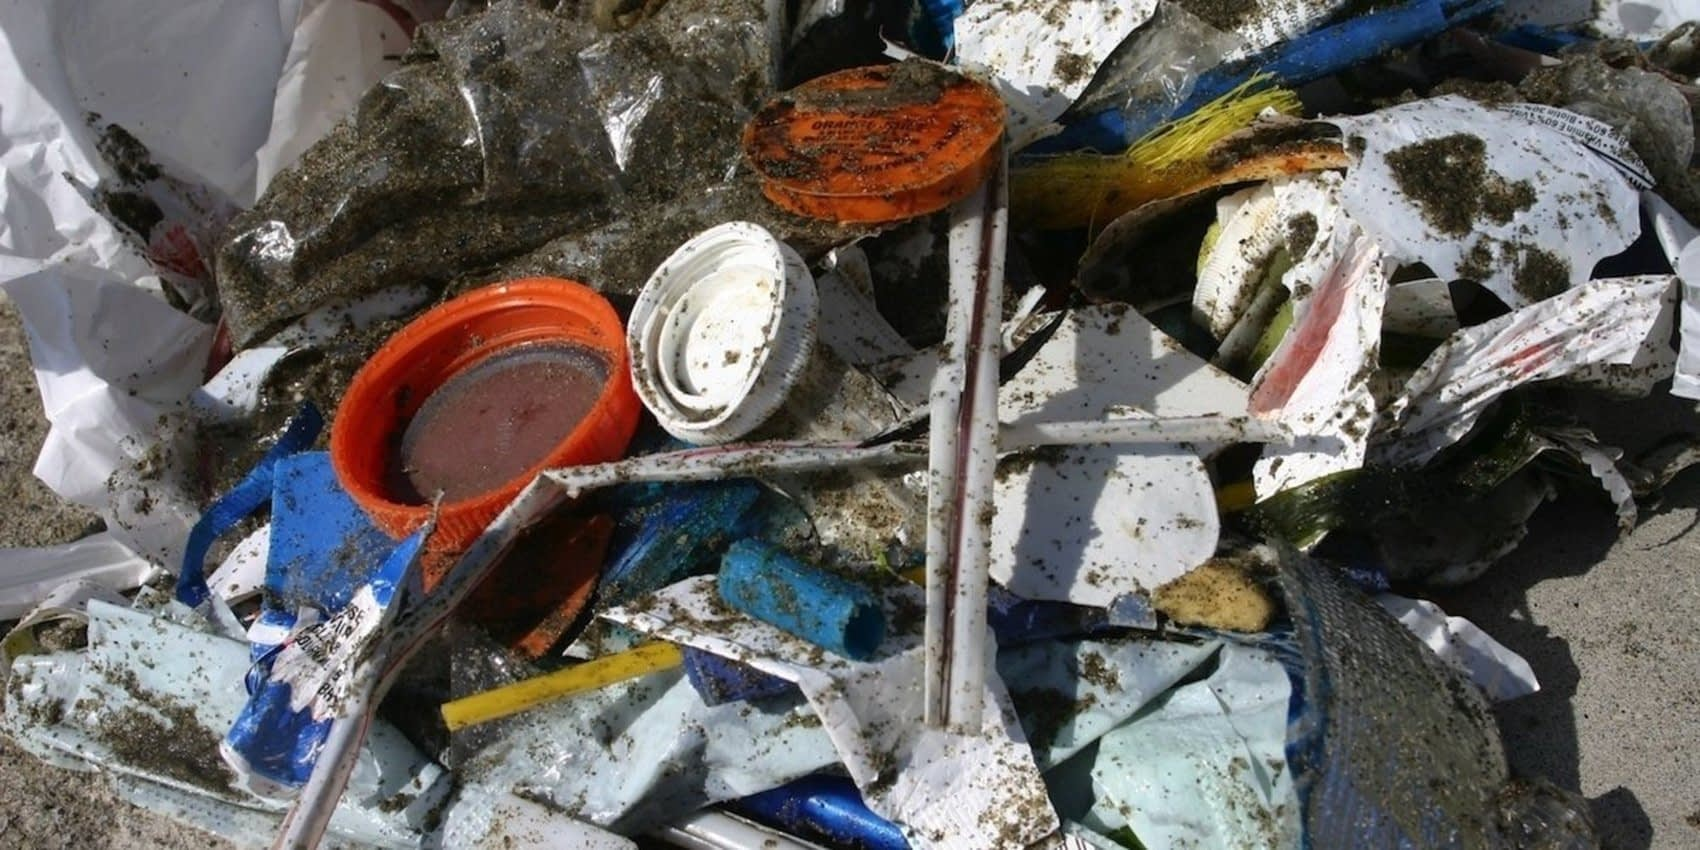 , SeaWorld, American Express, Fast Food Chains to Curb Single-Use Plastics, TheCircularEconomy.com